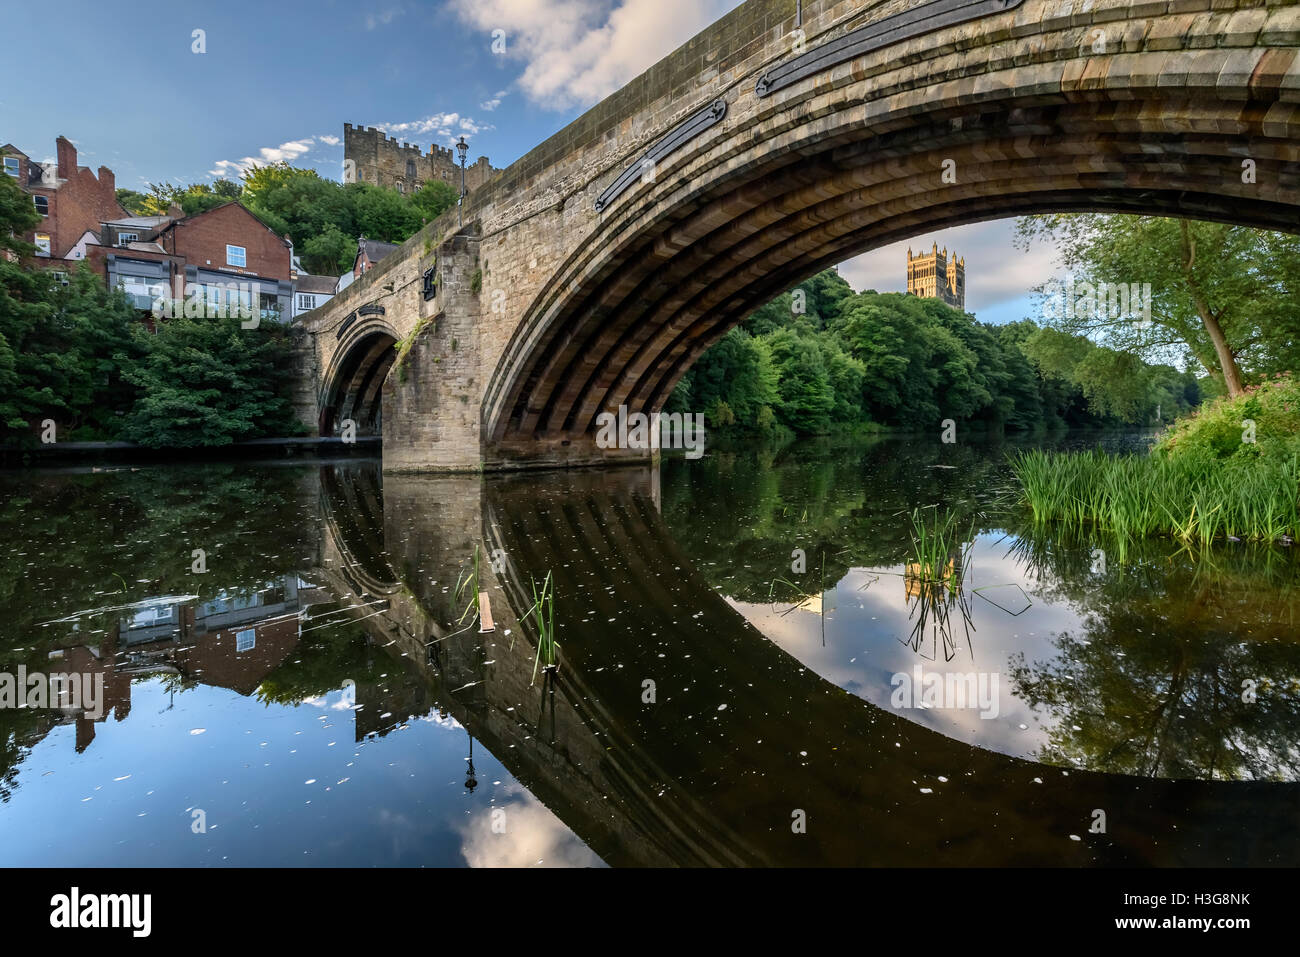 Framwellgate Bridge is a mediaeval's masonry arch bridge across the River Wear, in Durham, England. - Stock Image